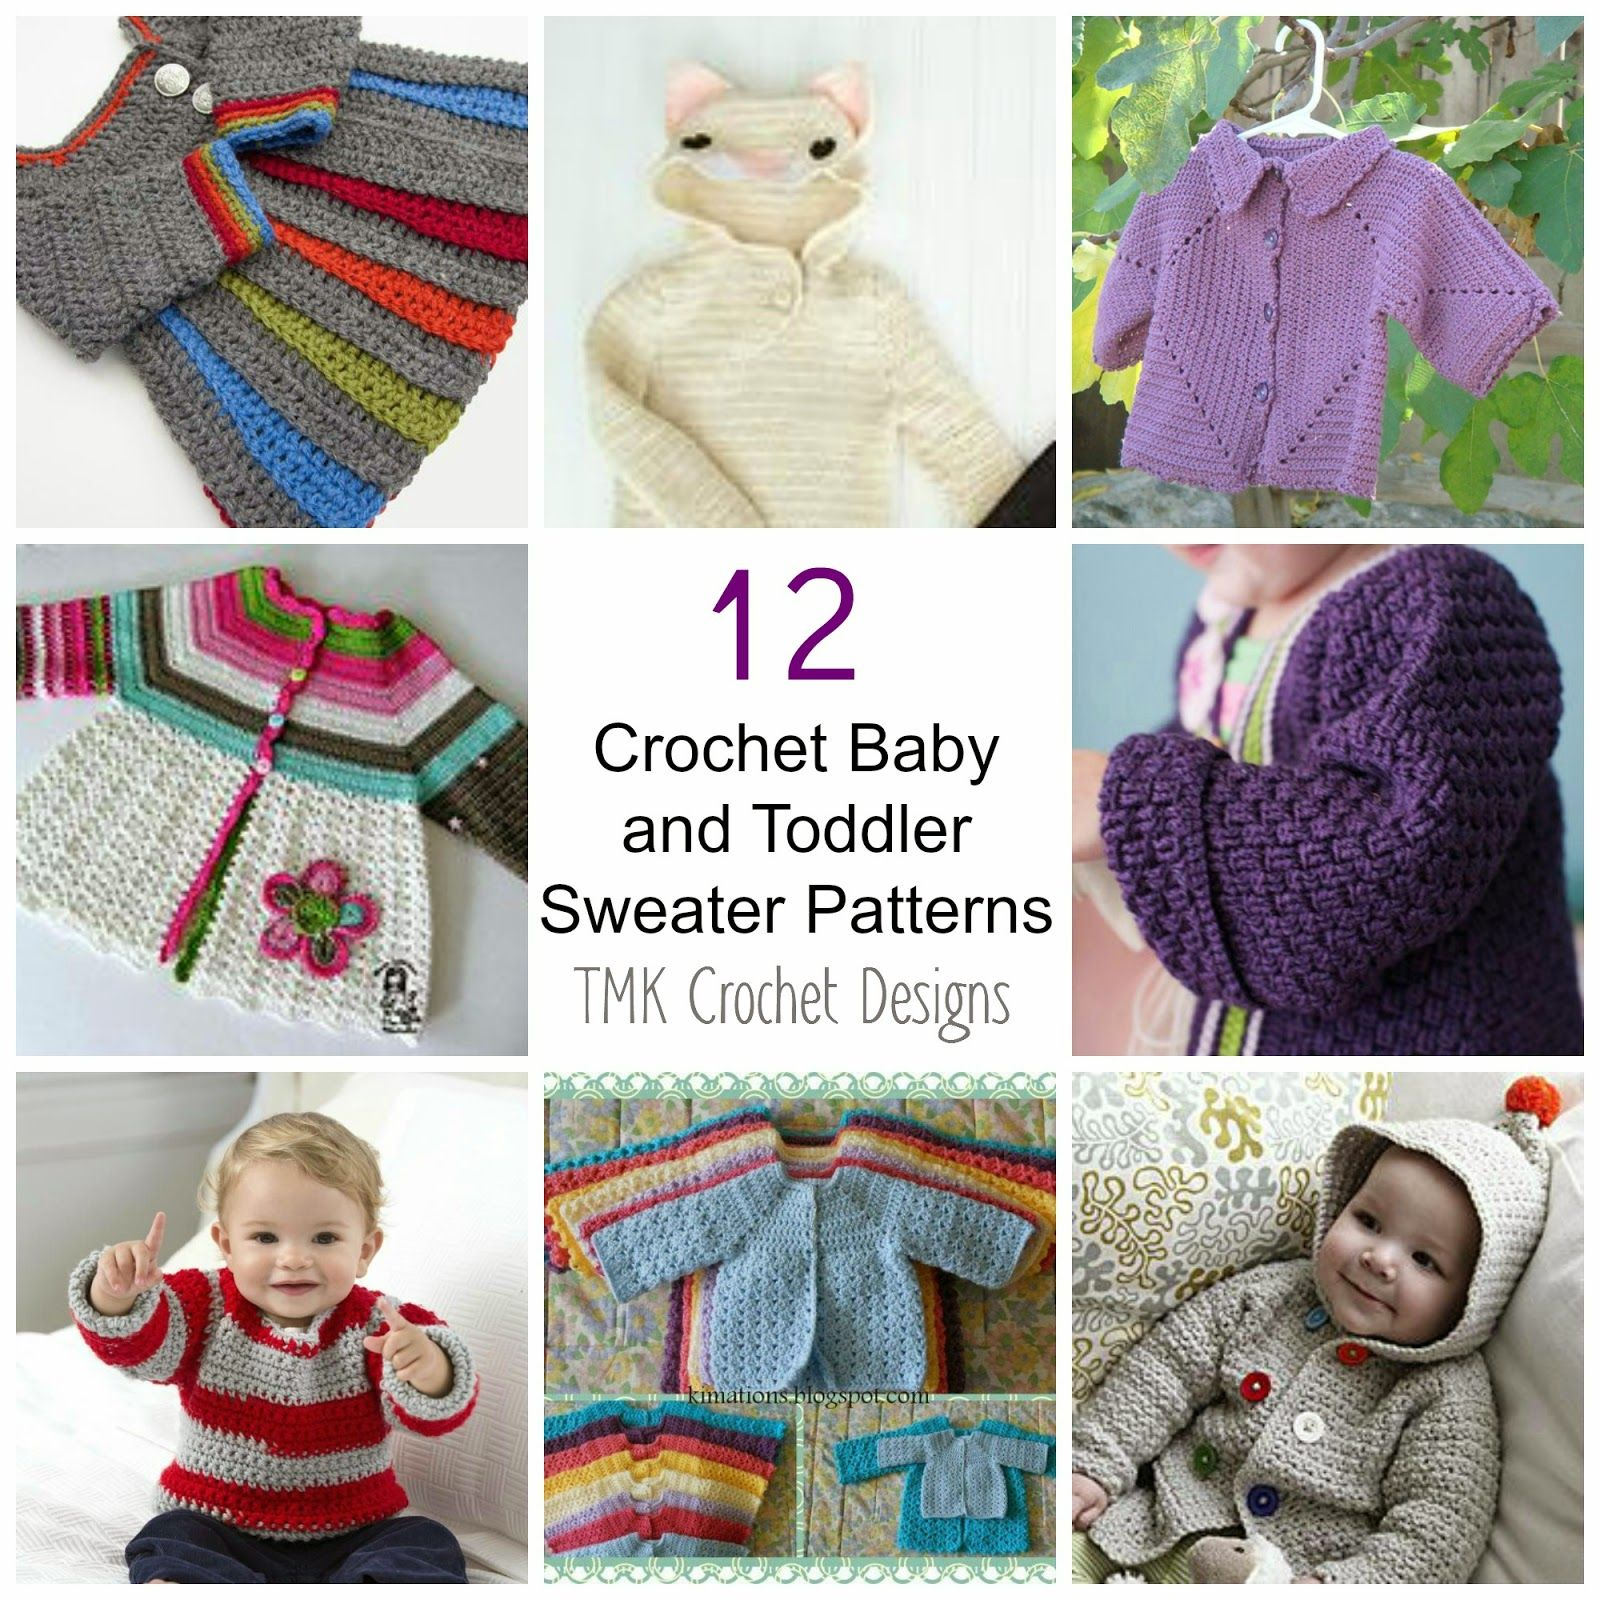 Tmk crochet free crochet pattern round up baby toddler tmk crochet free crochet pattern round up baby toddler sweaters bankloansurffo Images